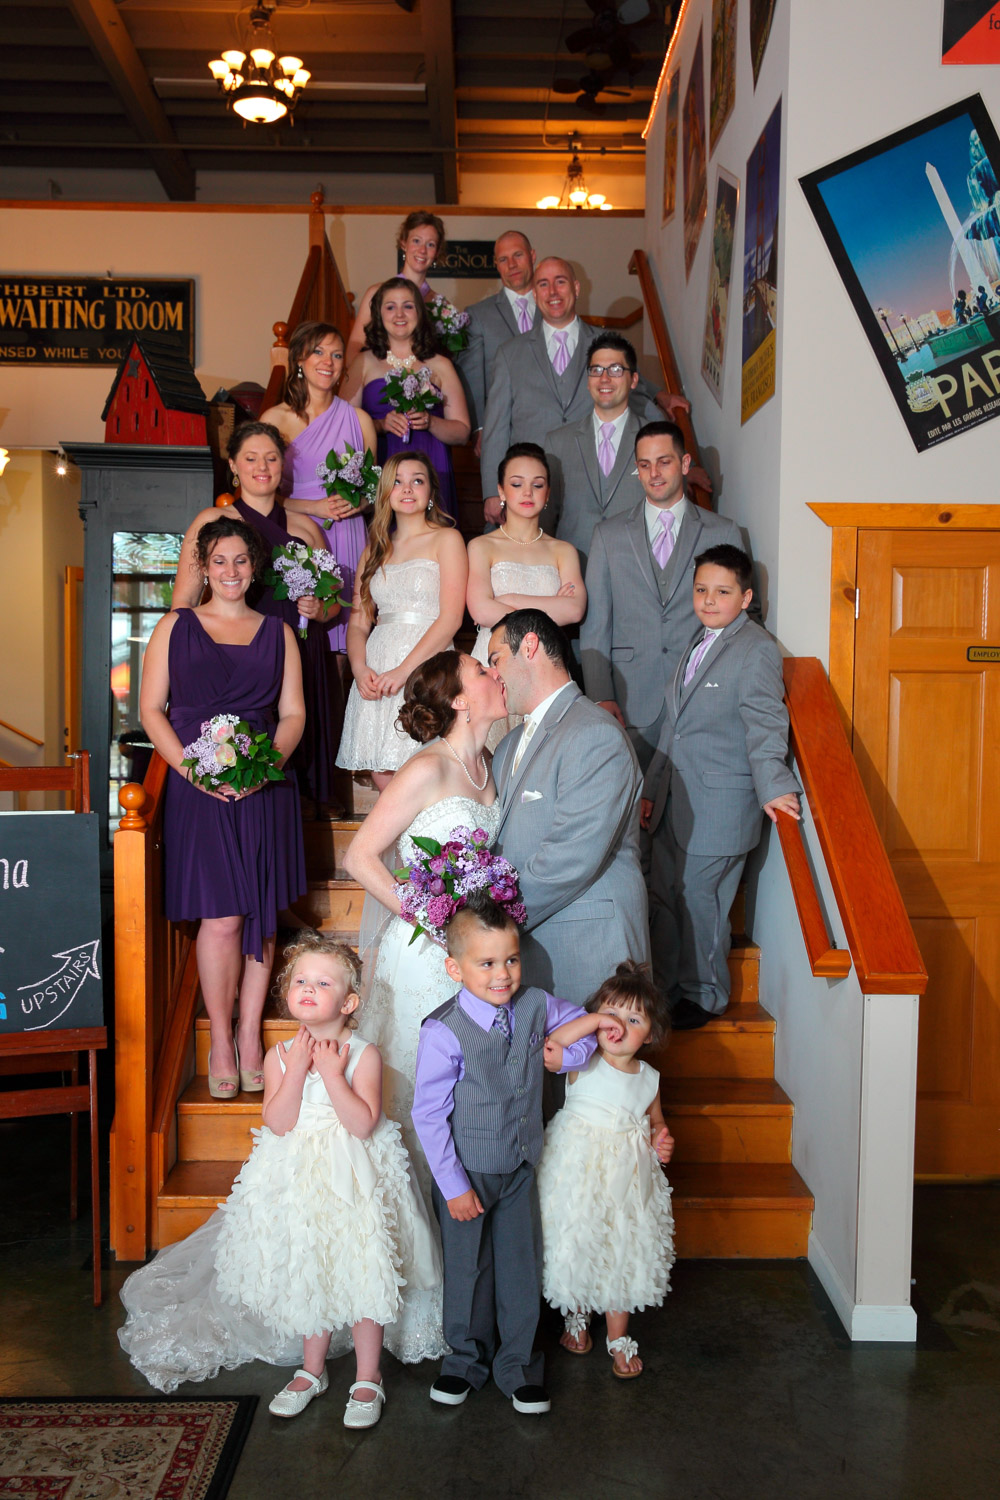 Wedding Photos Snohomish Event Center Snohomish Washington22.jpg